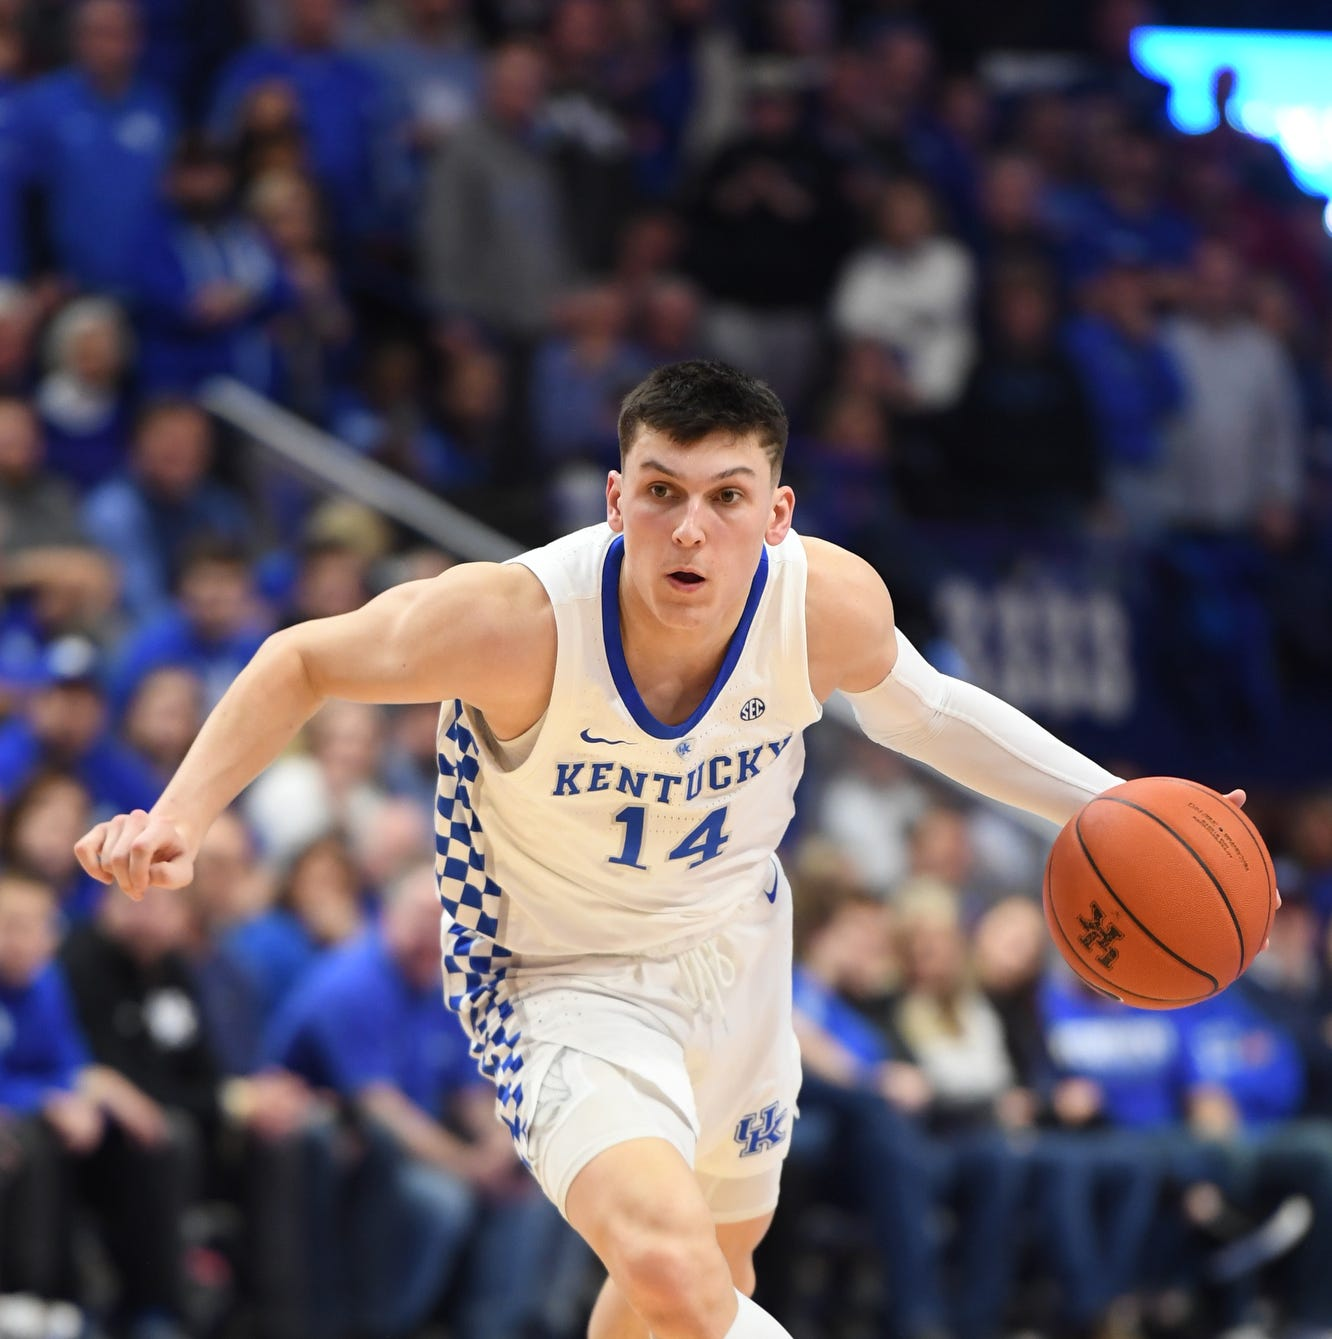 Tyler Herro's 29 points Tuesday and other story lines to watch involving Wisconsin high school players in DI hoops as March looms